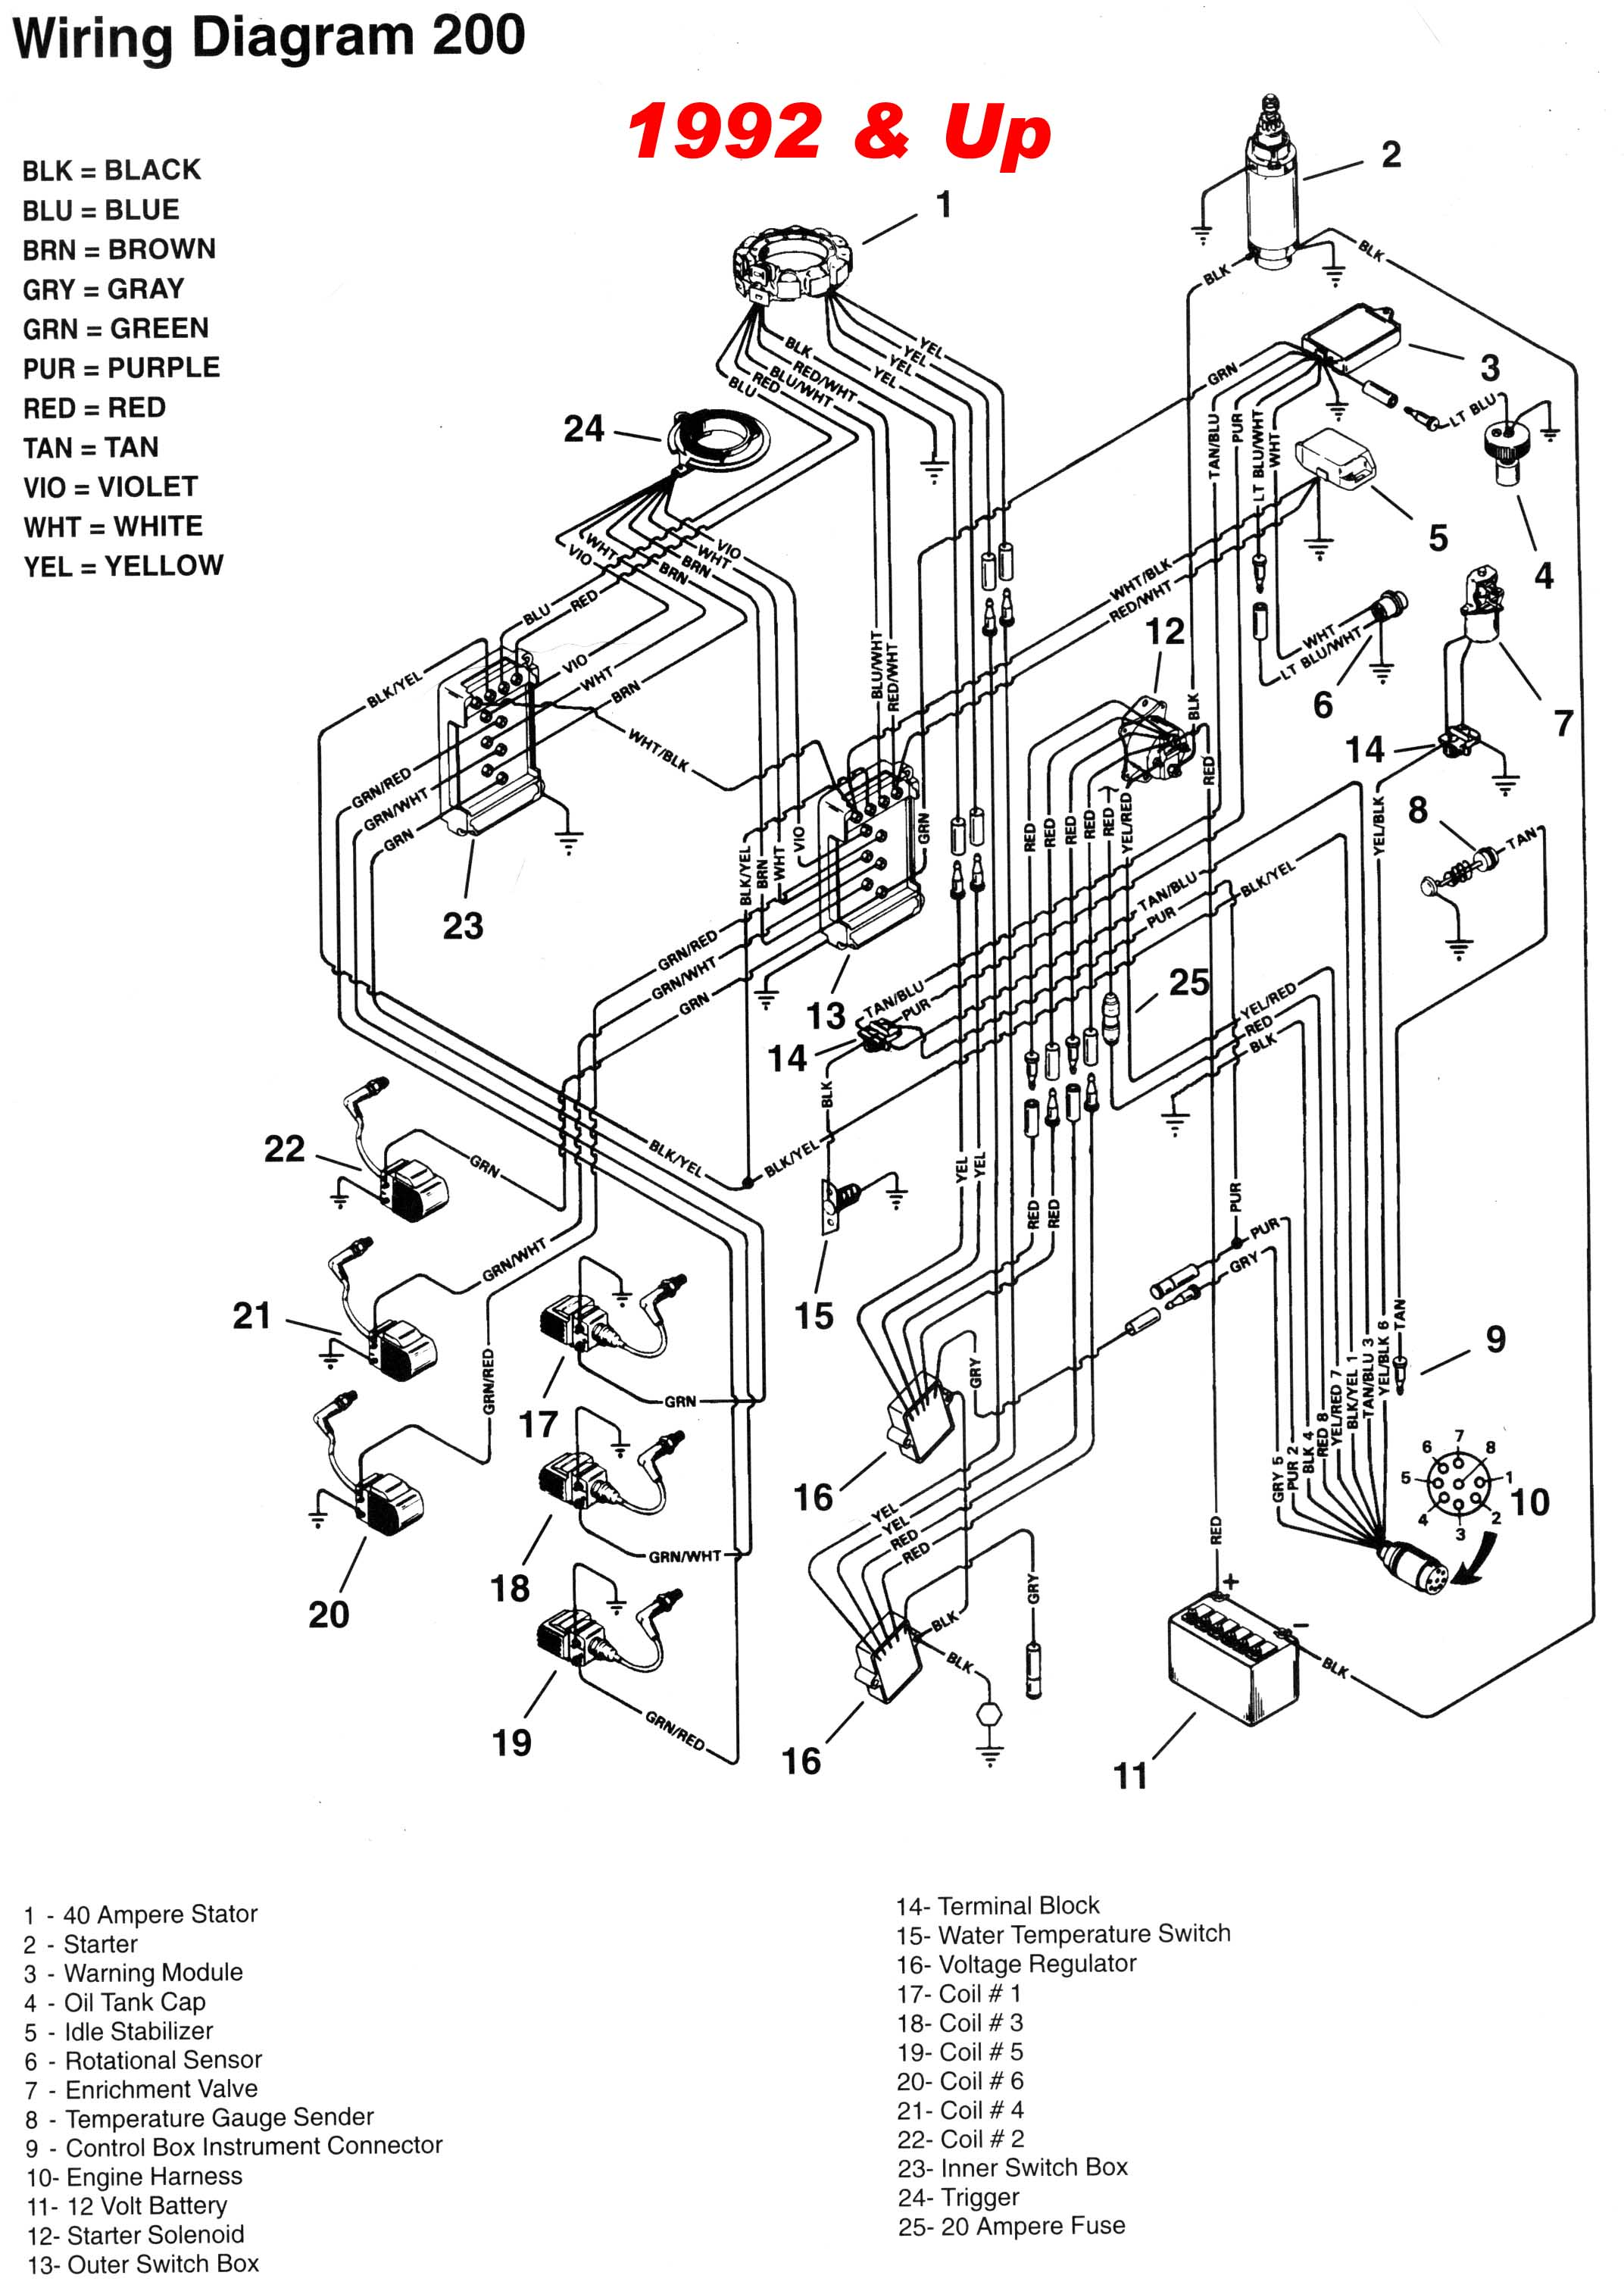 mercury_92up_200_wiring mercury optimax wiring diagram mercury verado wiring diagram  at alyssarenee.co